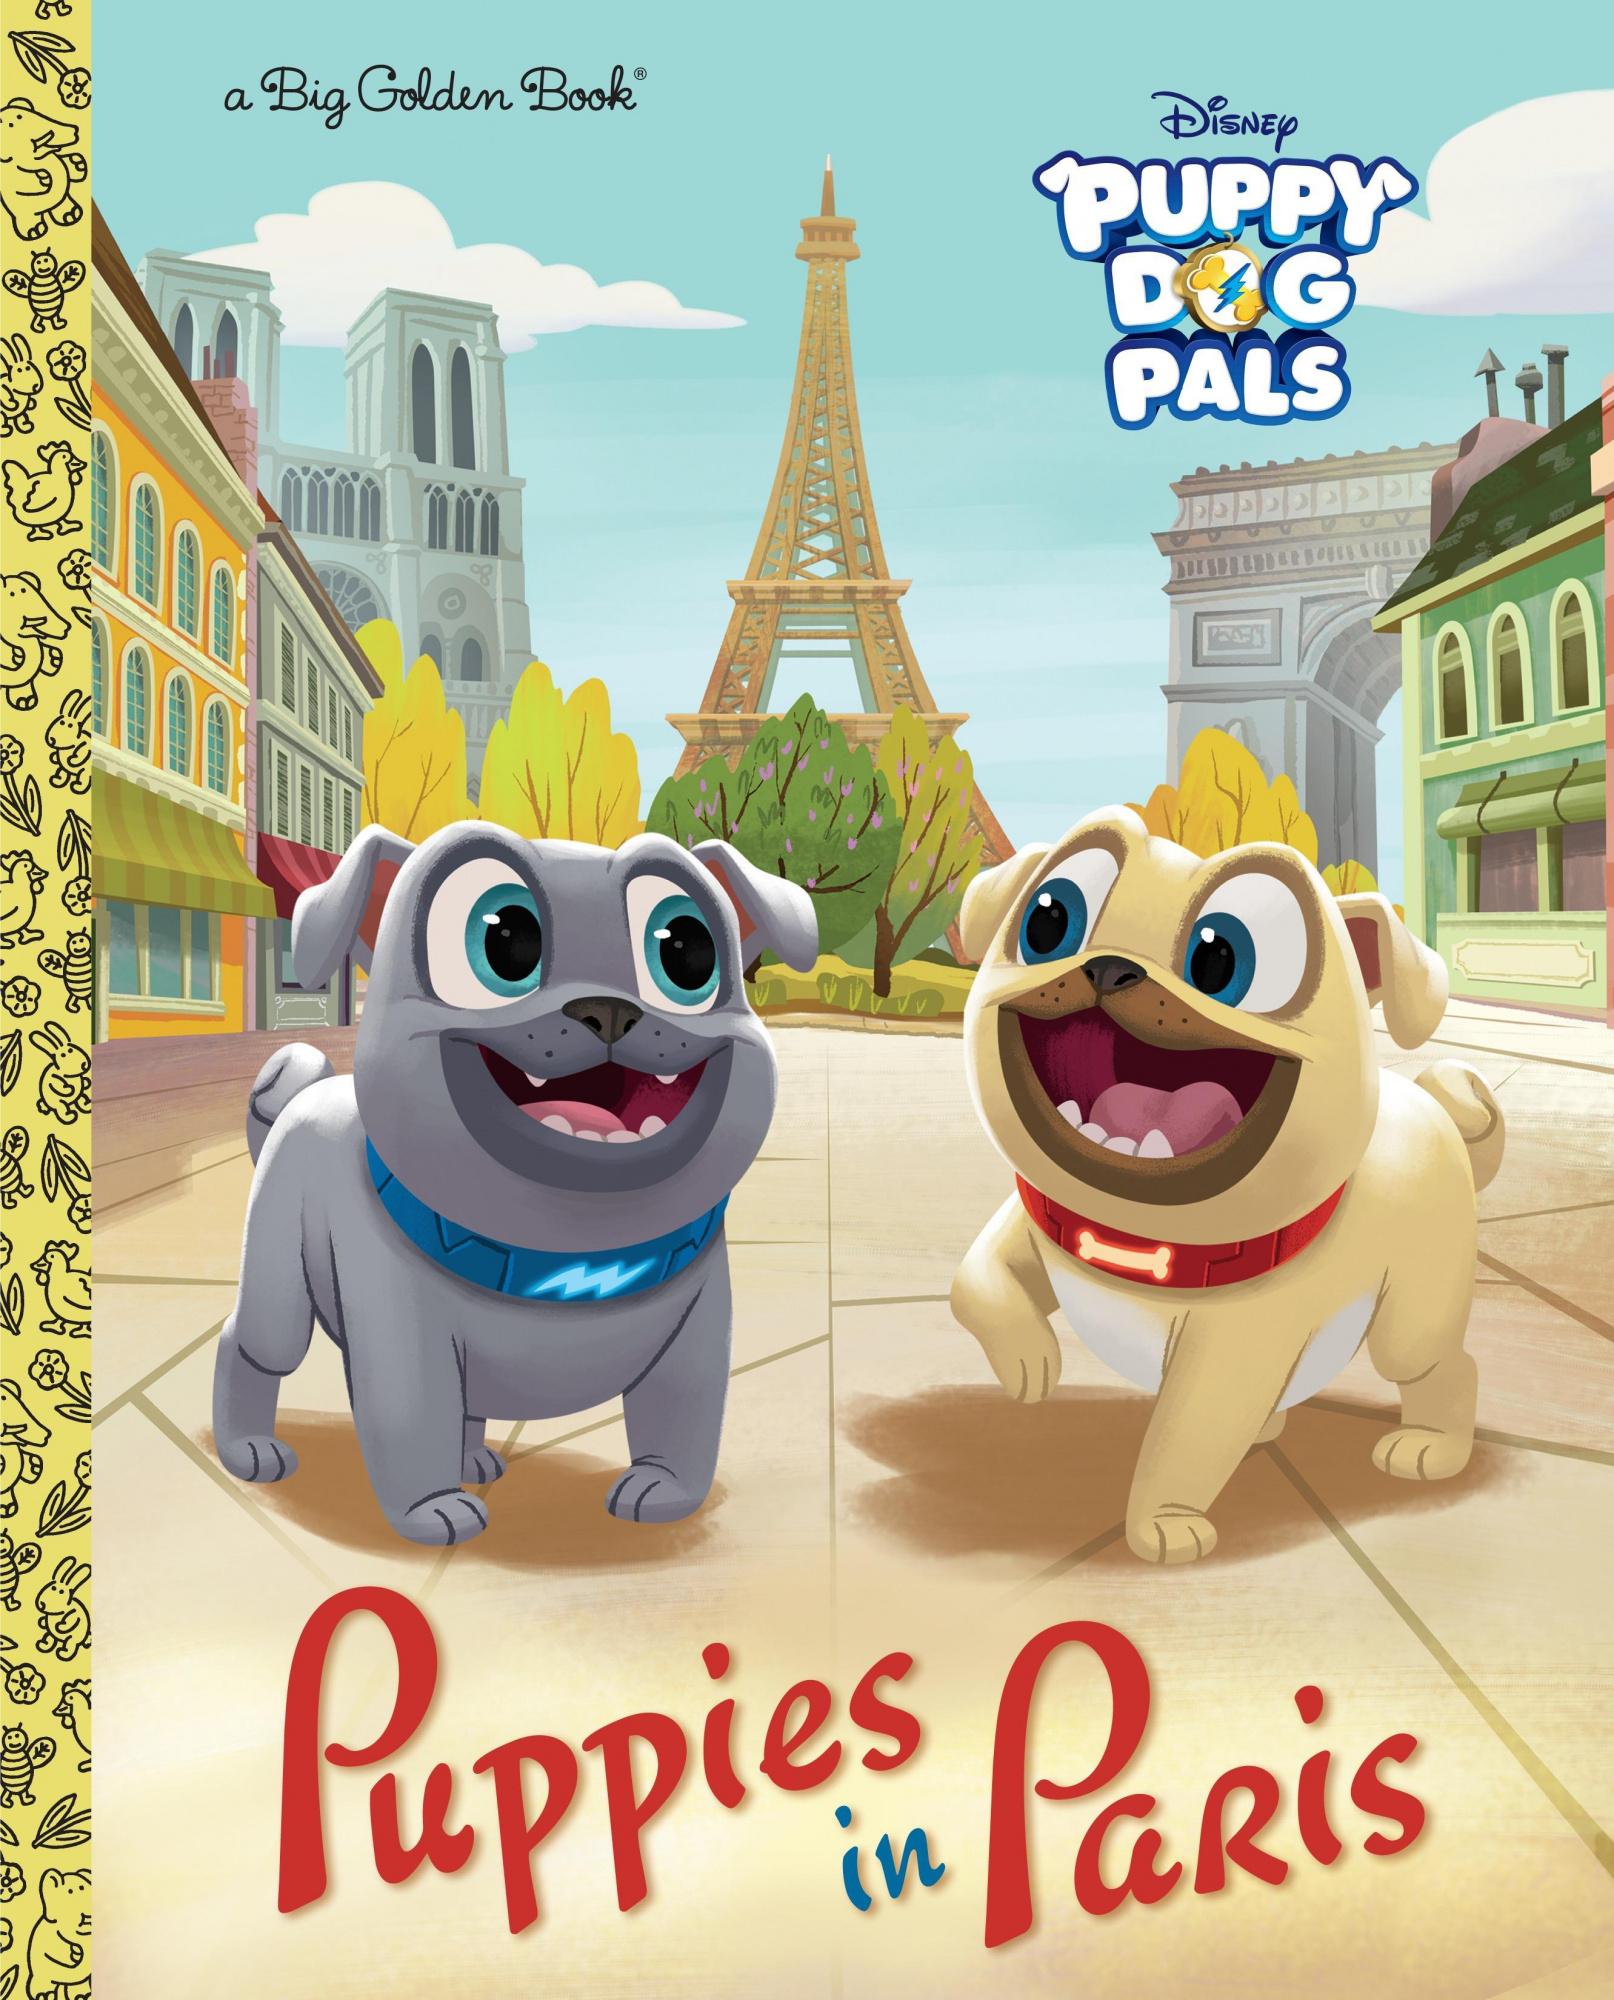 Puppies in Paris (Disney JuniorPuppy Dog Pals)